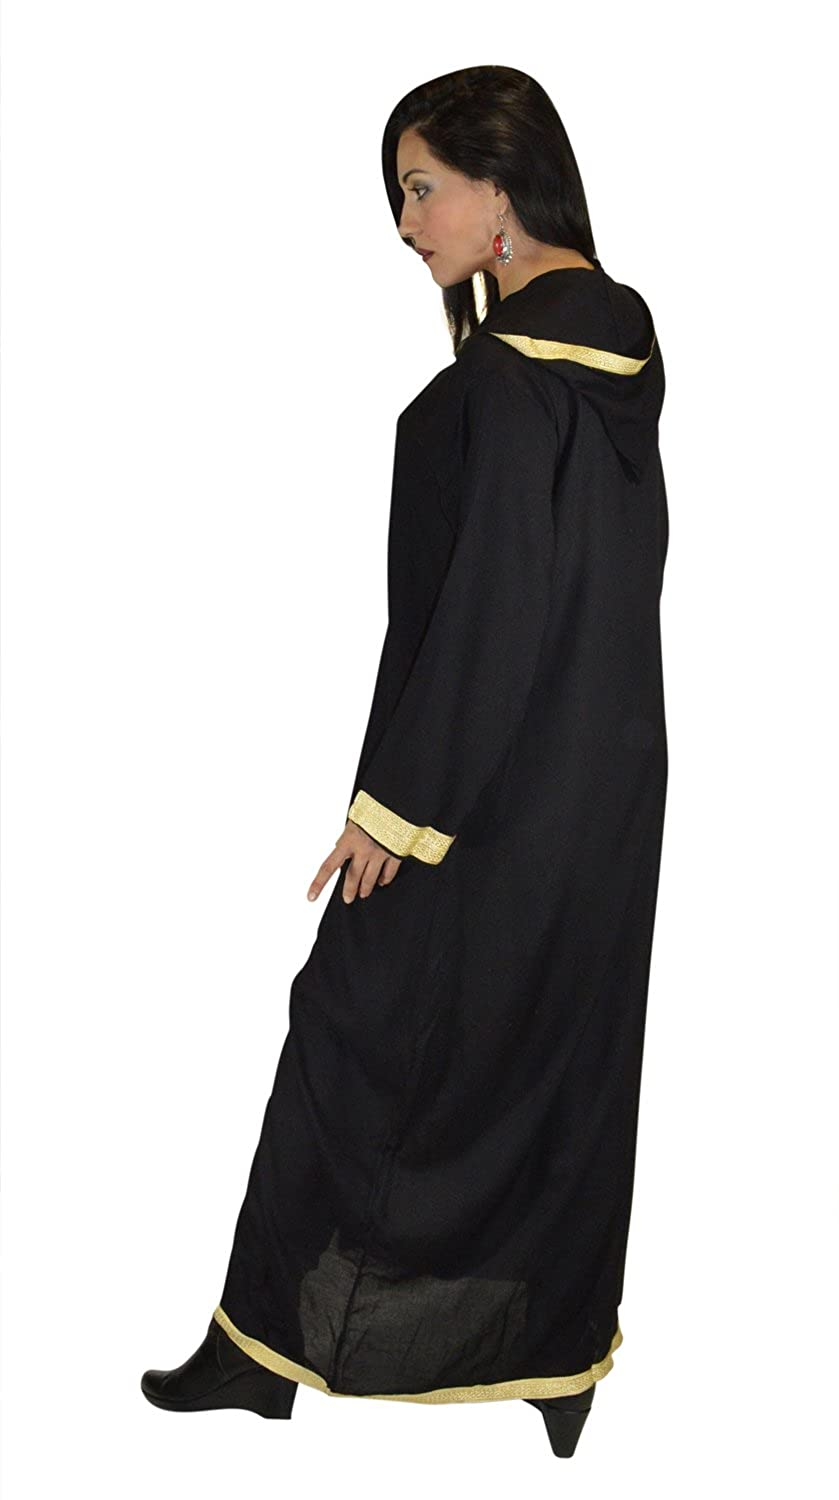 0ed5040e0b118 Moroccan Caftans Women Hand Made Breathable Hooded Caftan Fits Small To  Medium Embroidered Black and Gold at Amazon Women's Clothing store: